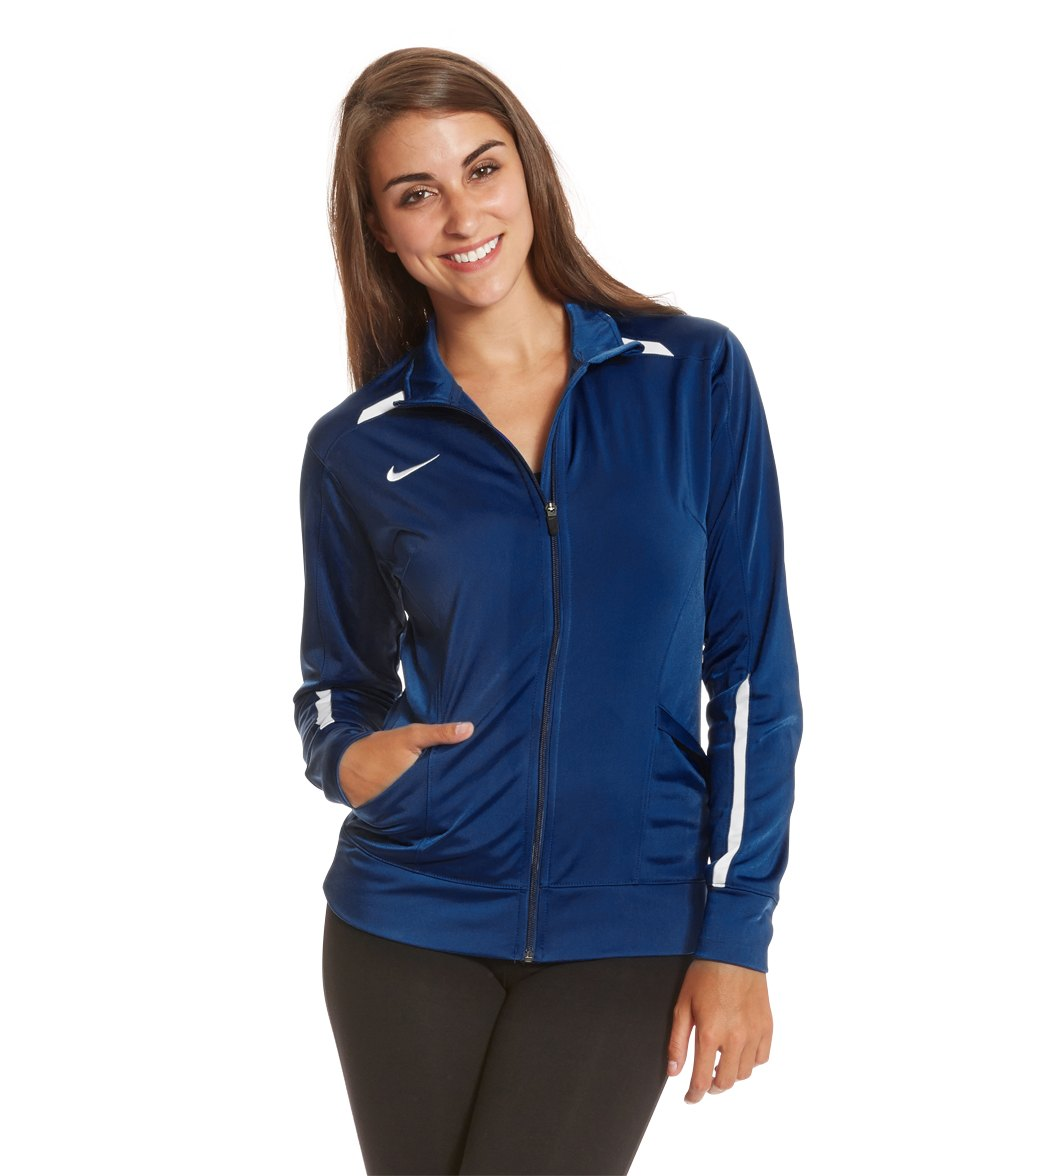 Nike Swim Women s Overtime Warm-Up Jacket at SwimOutlet.com ... ebcf1ae2d8